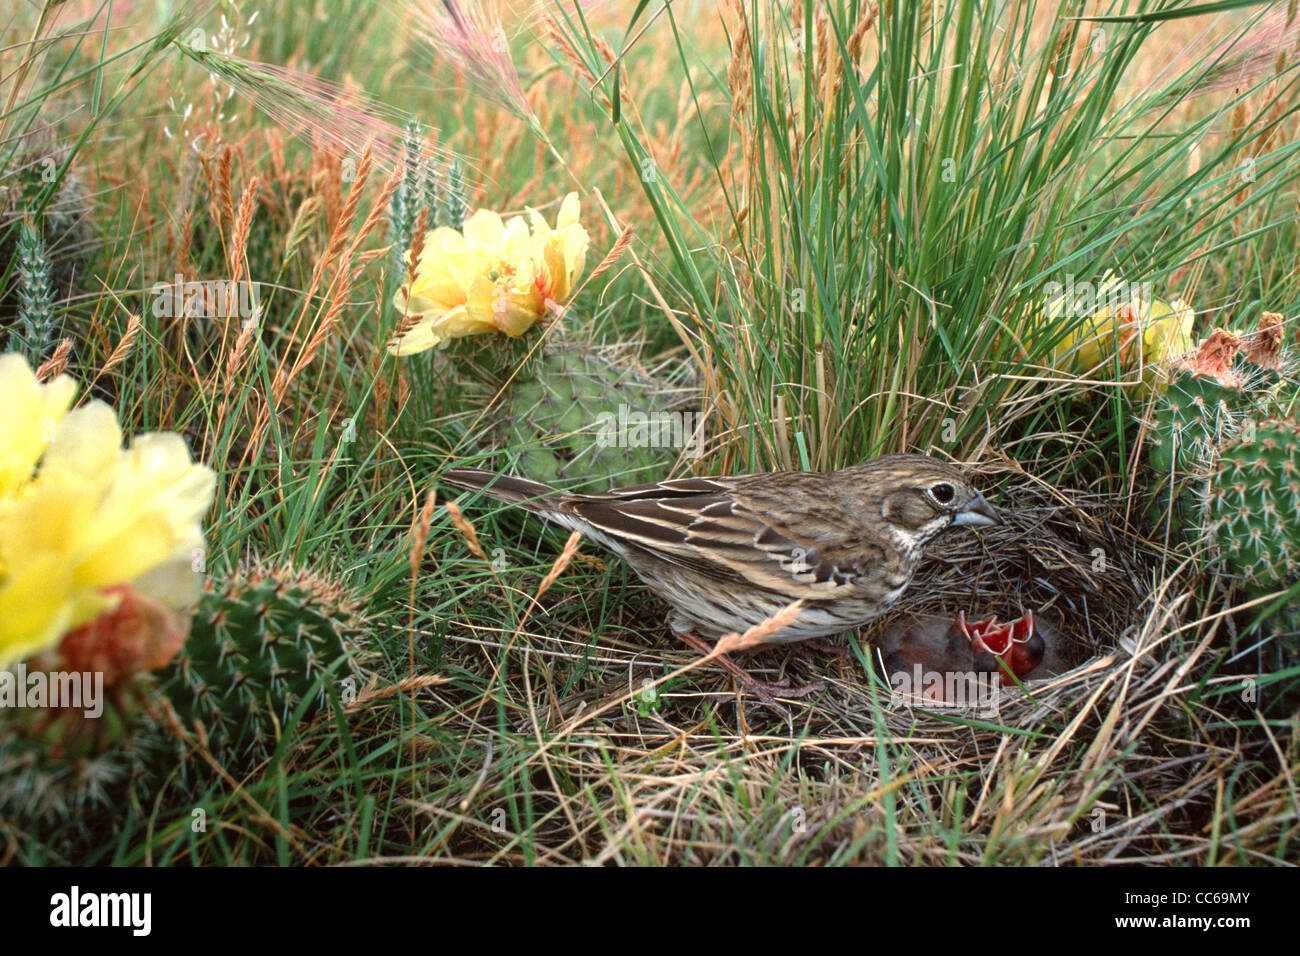 Lark Bunting - female at nest with nestlings - in field with cactuses and flowers - Stock Image